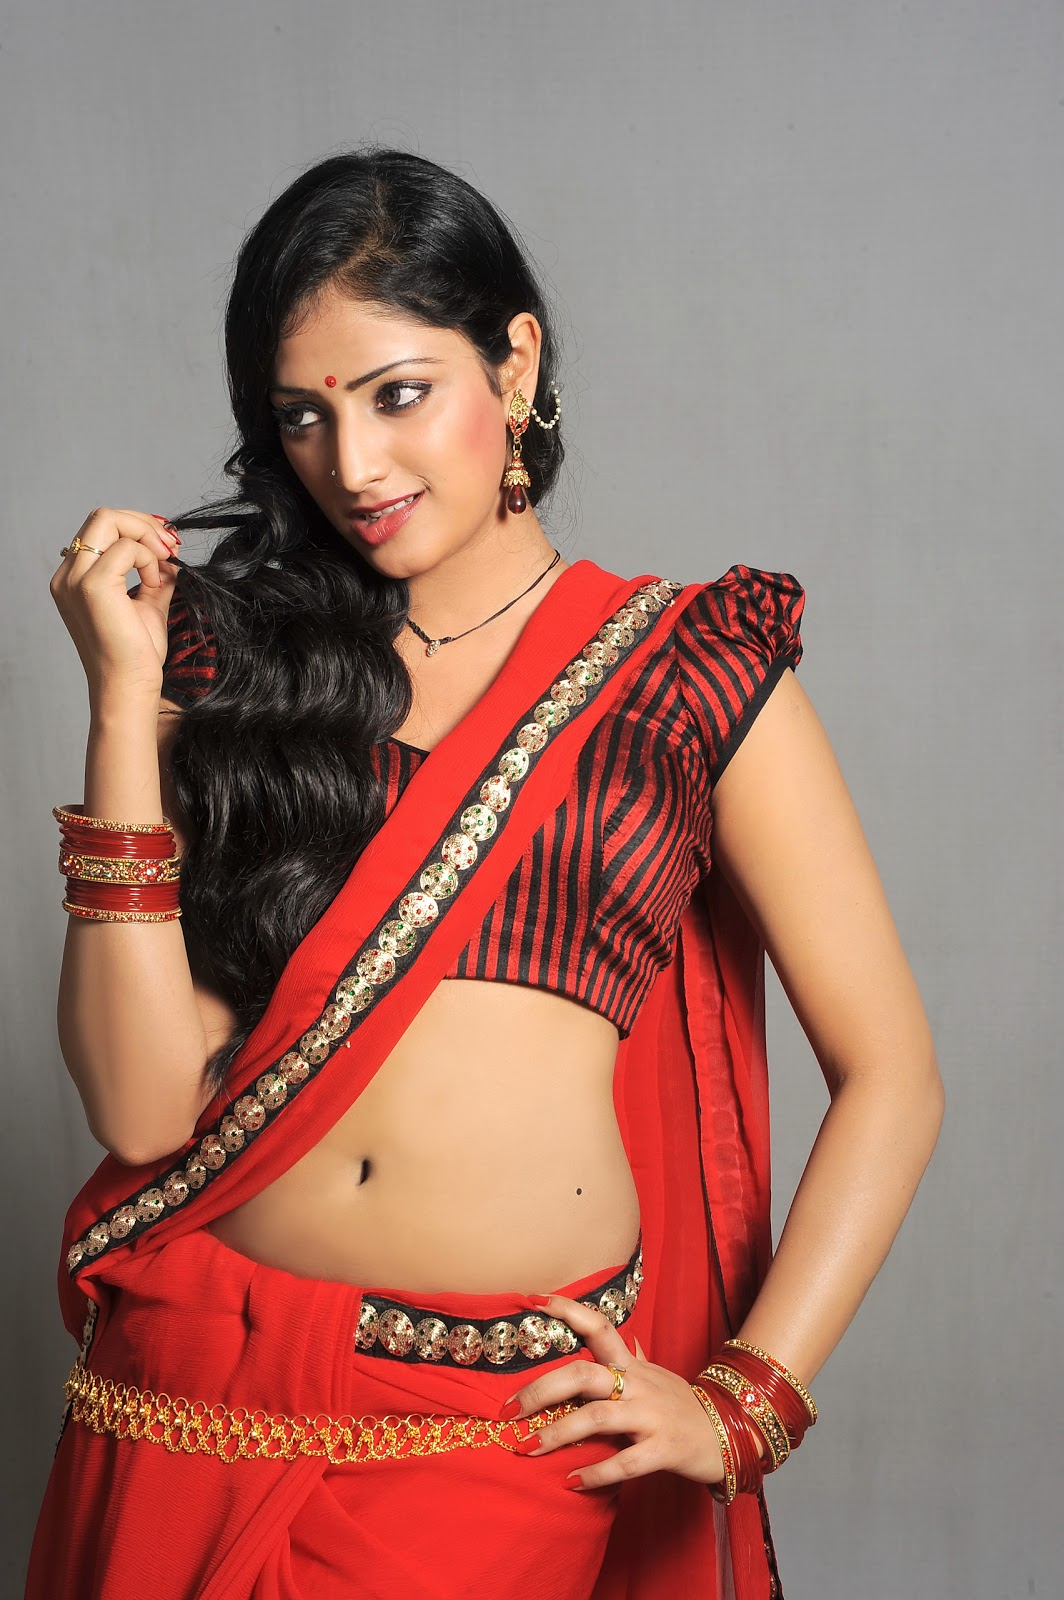 Hari Priya – Latest Hot Navel Pics